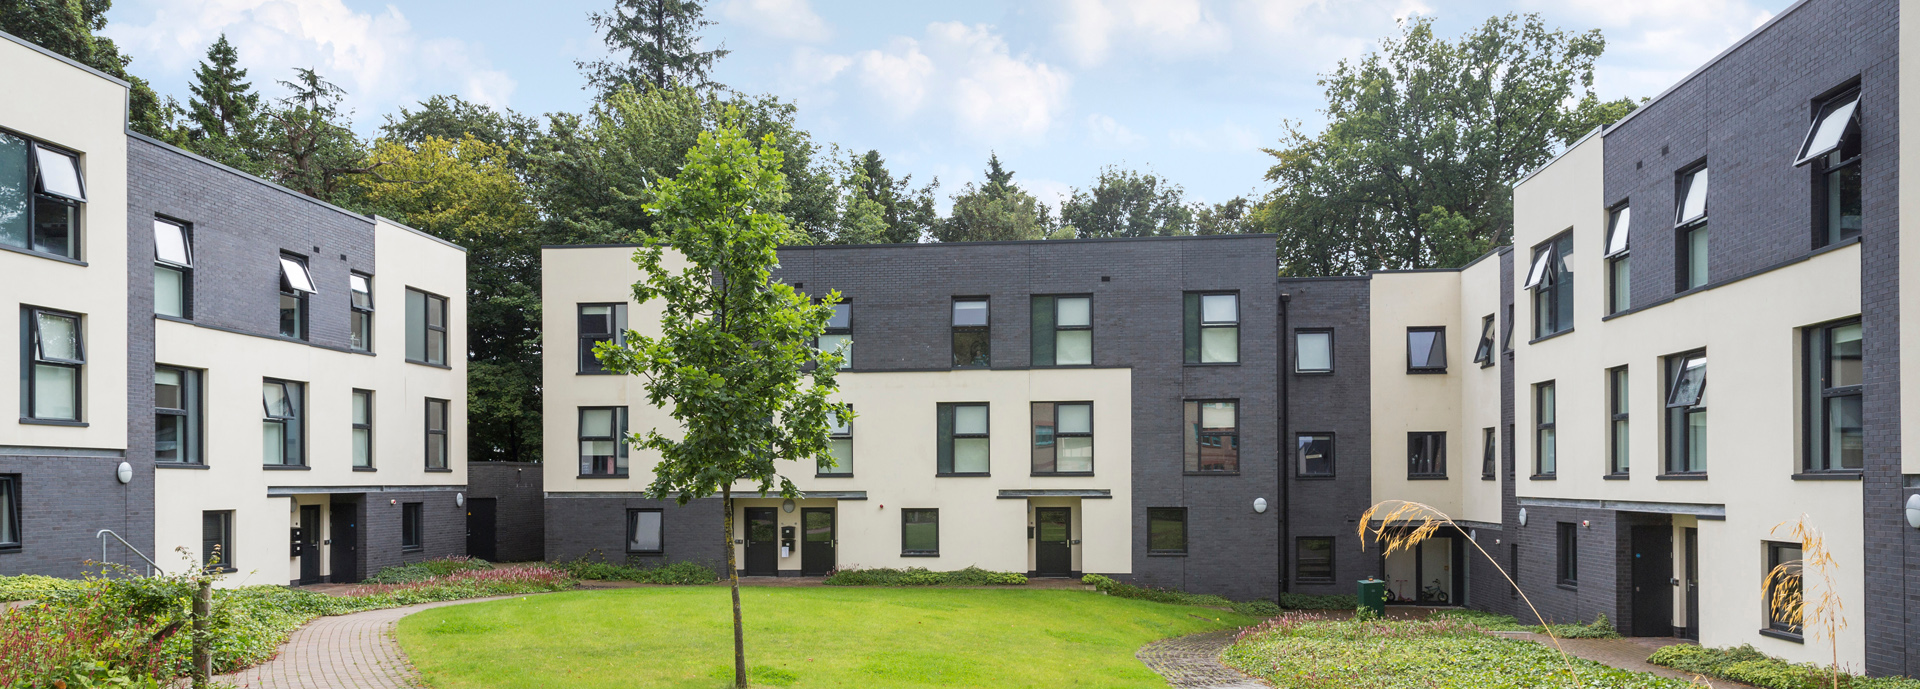 Alexander Court family flats accommodation,  University of Stirling